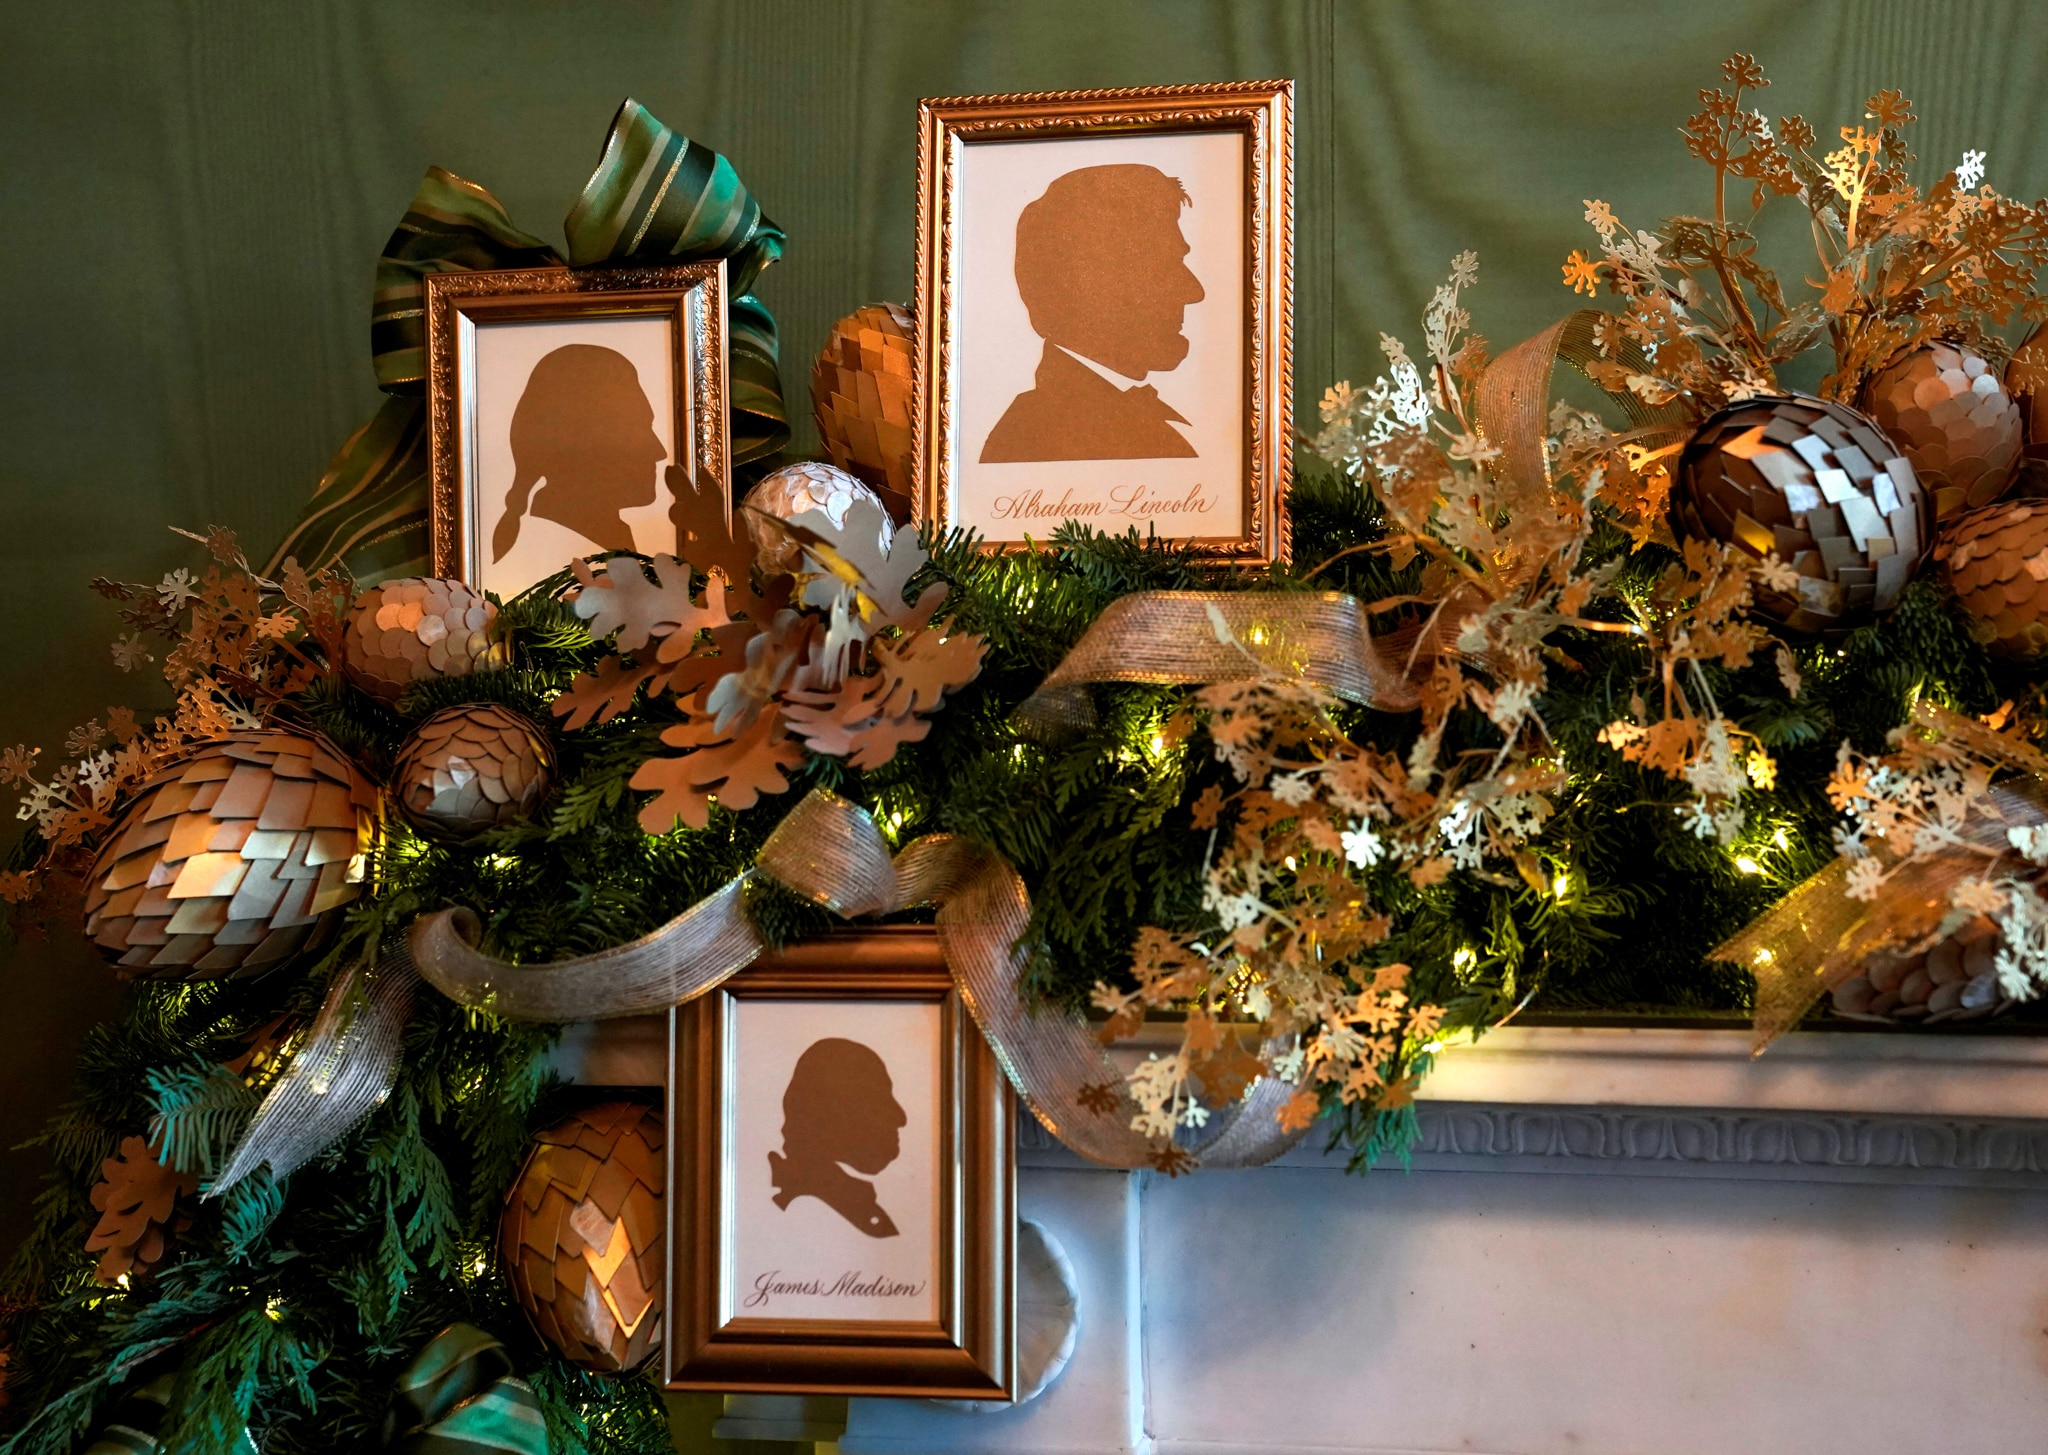 Decorated mantel with three framed presidential silhouettes (© Kevin Lamarque/Reuters)